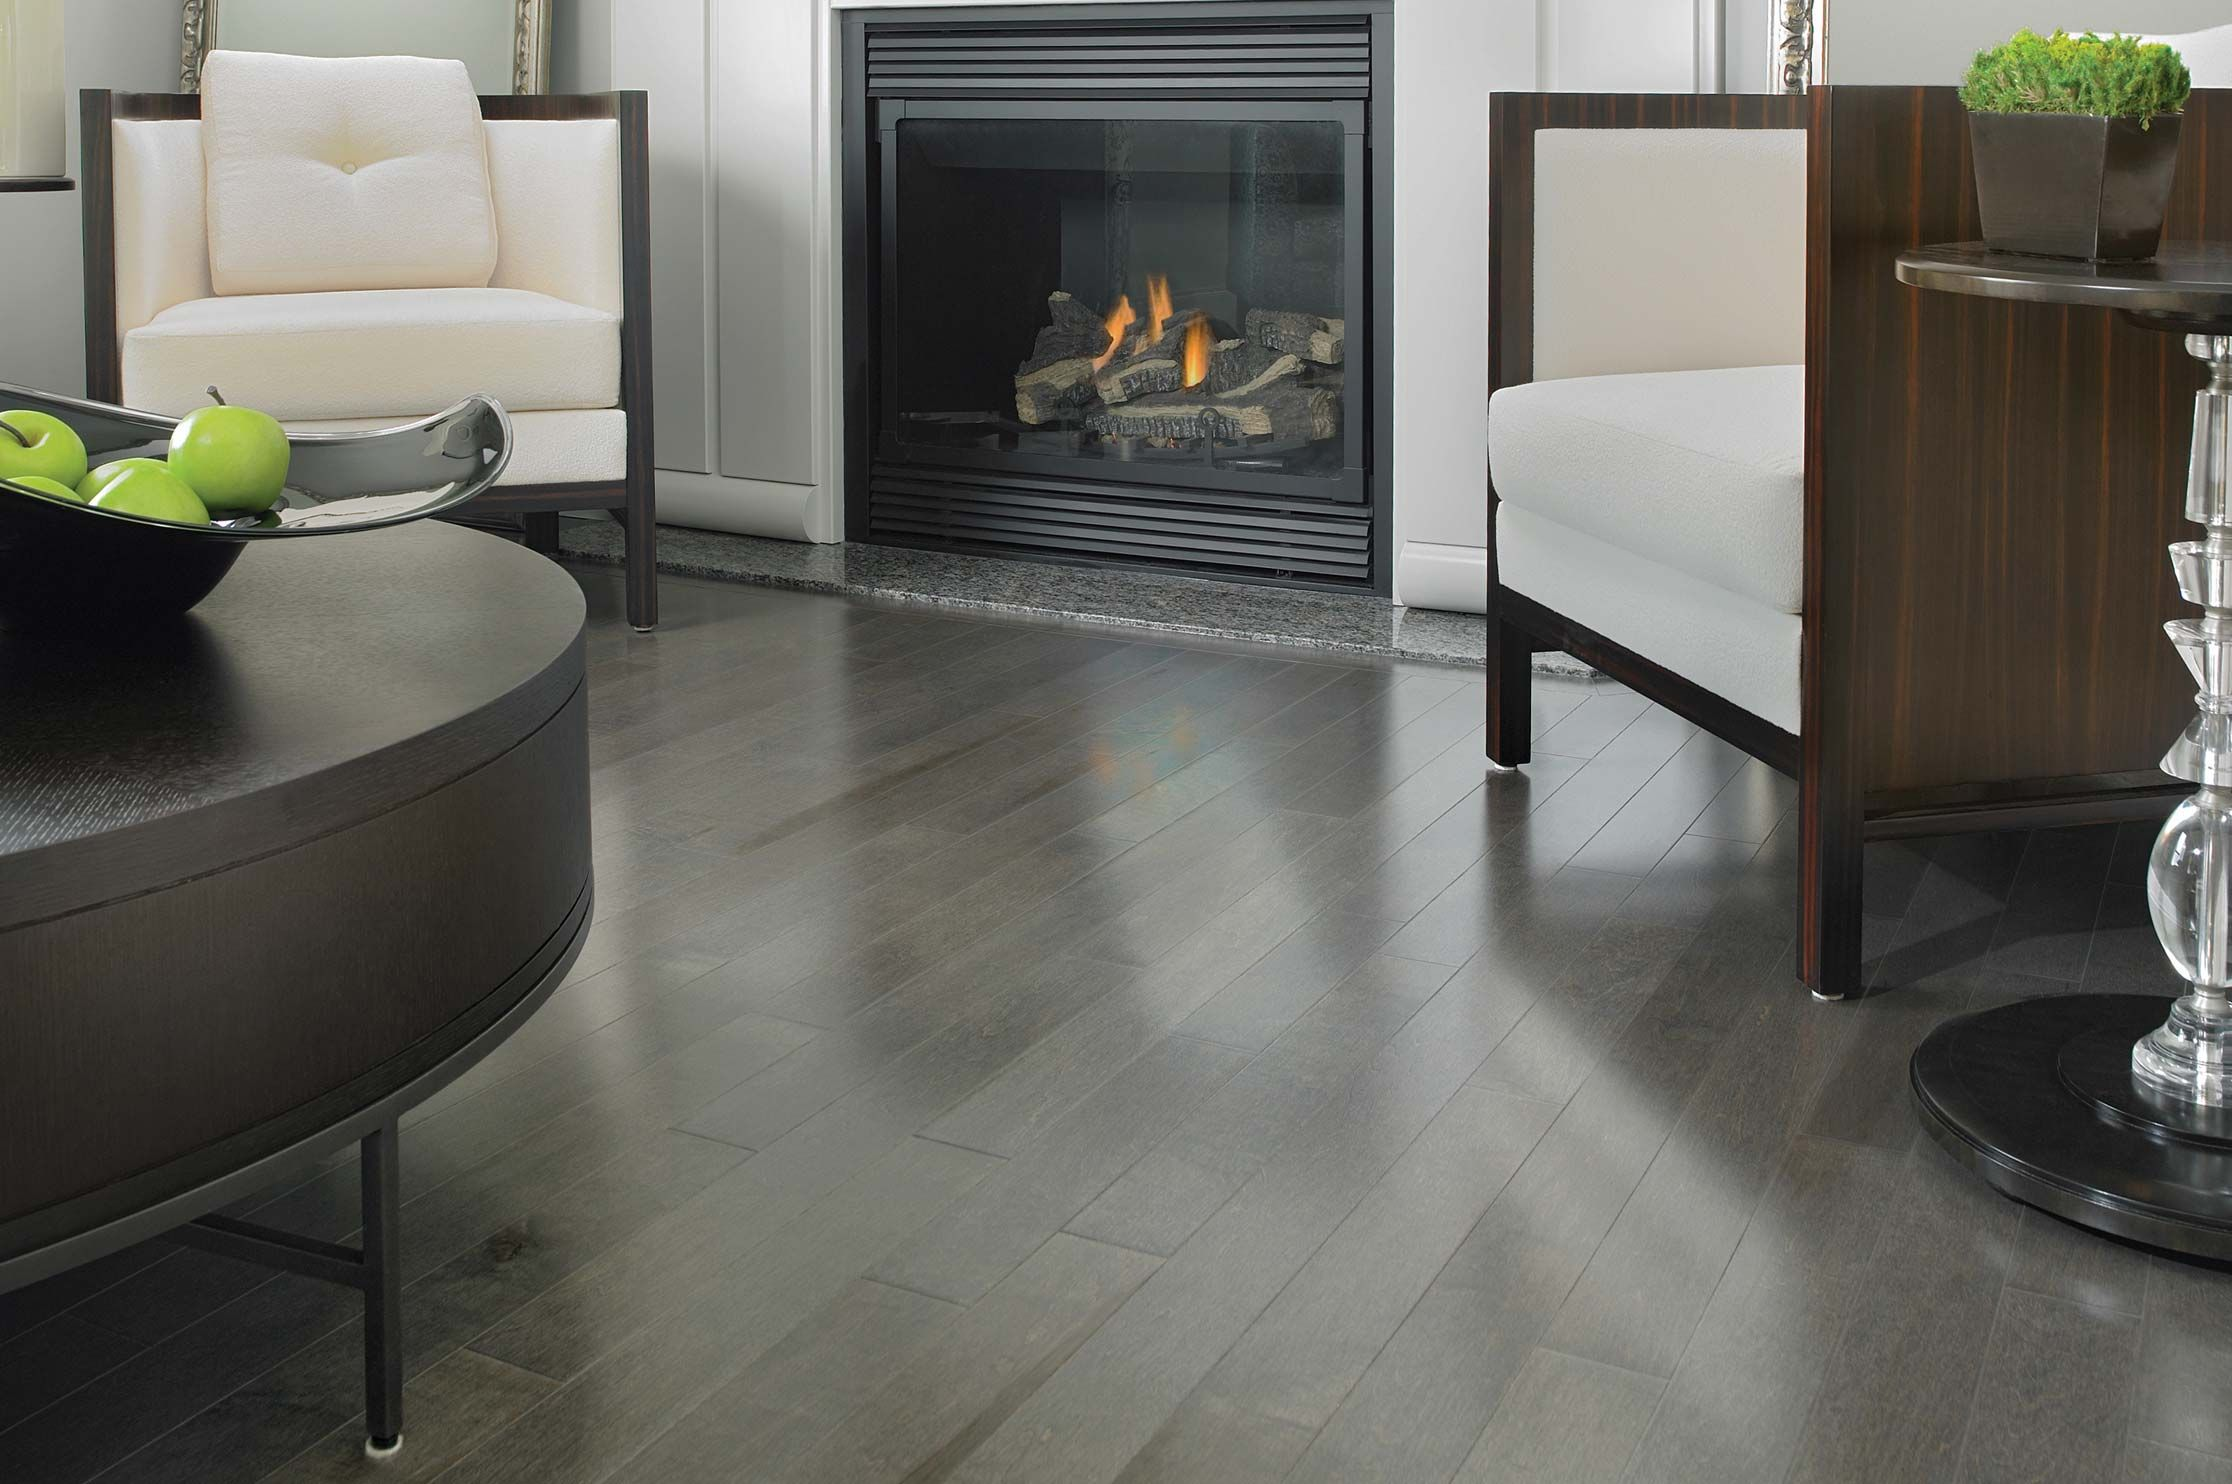 5 \'Shades\' of Gray for Fantastic Flooring Options - homeyou